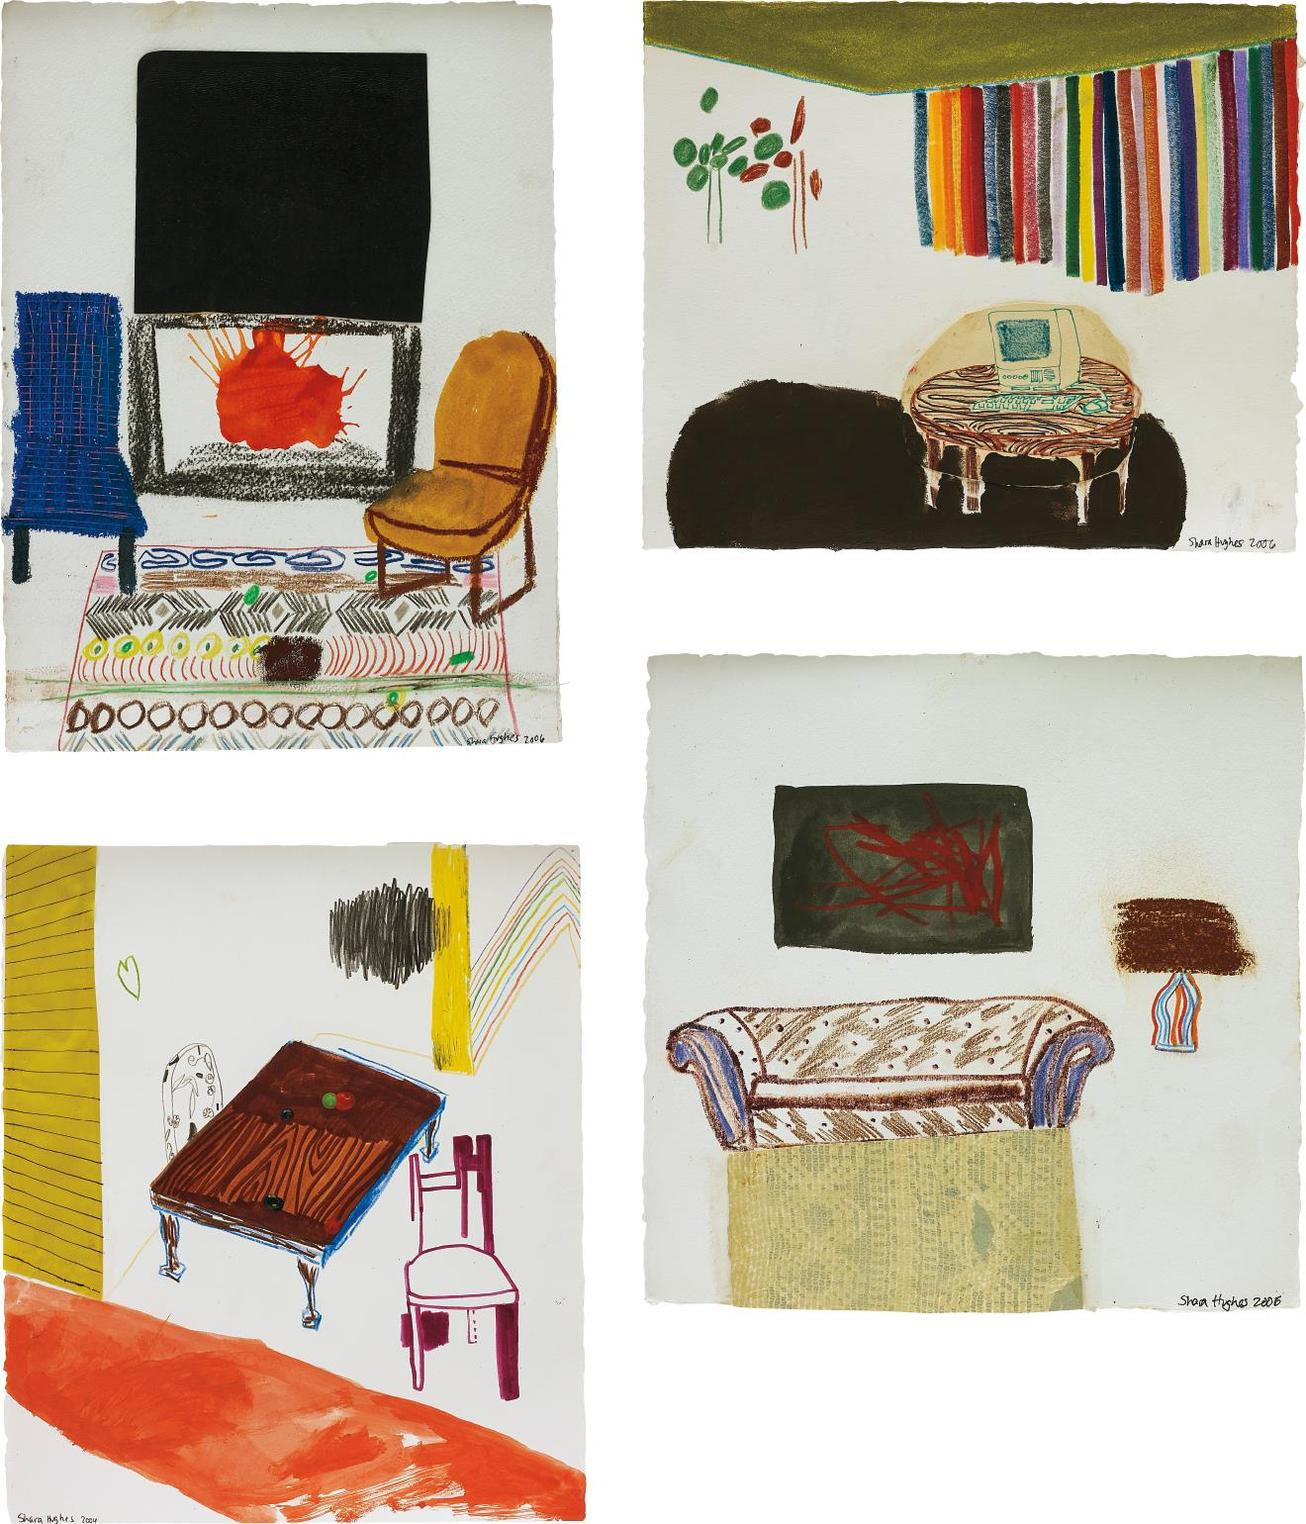 Shara Hughes-Four Works: (i) Black Art And Fireplace; (ii) Computer Table With Rainbow Shades; (iii) Rainbow Lamp; (iv) Grown-Up Table-2006